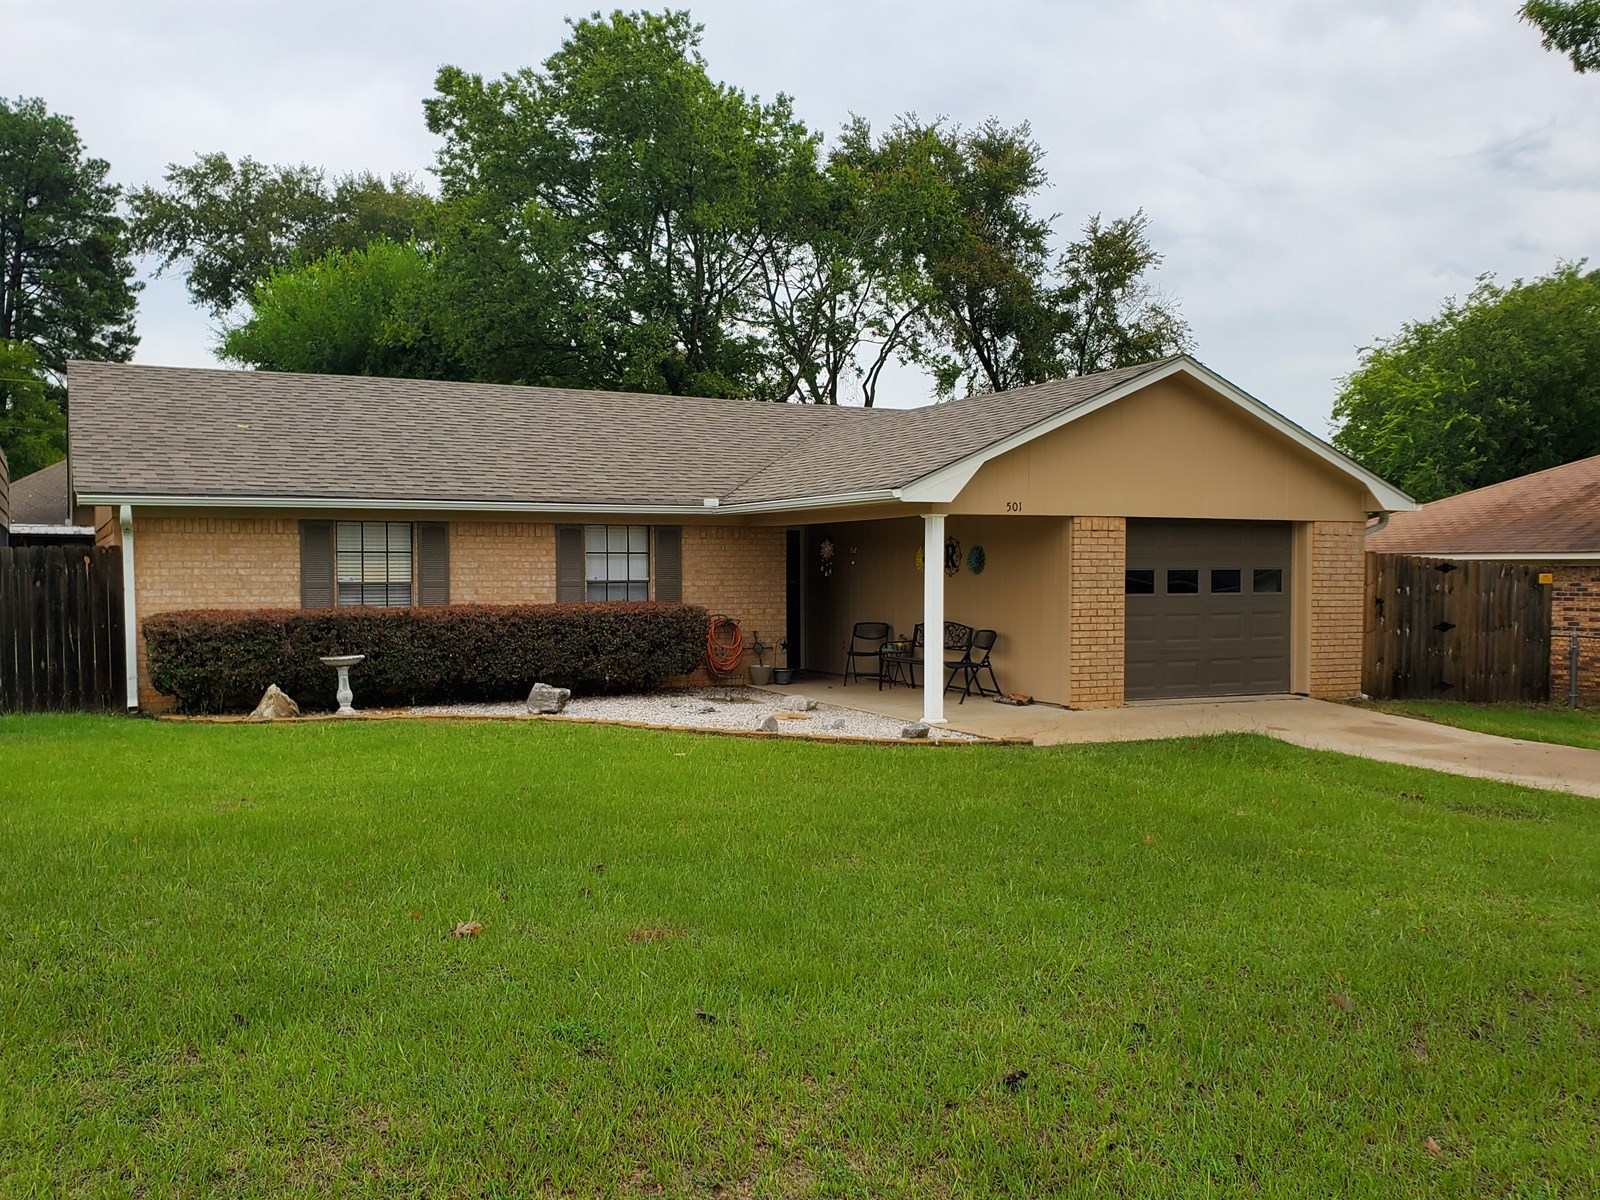 CUTE COUNTRY HOME FOR SALE CHANDLER TEXAS 3/2/1